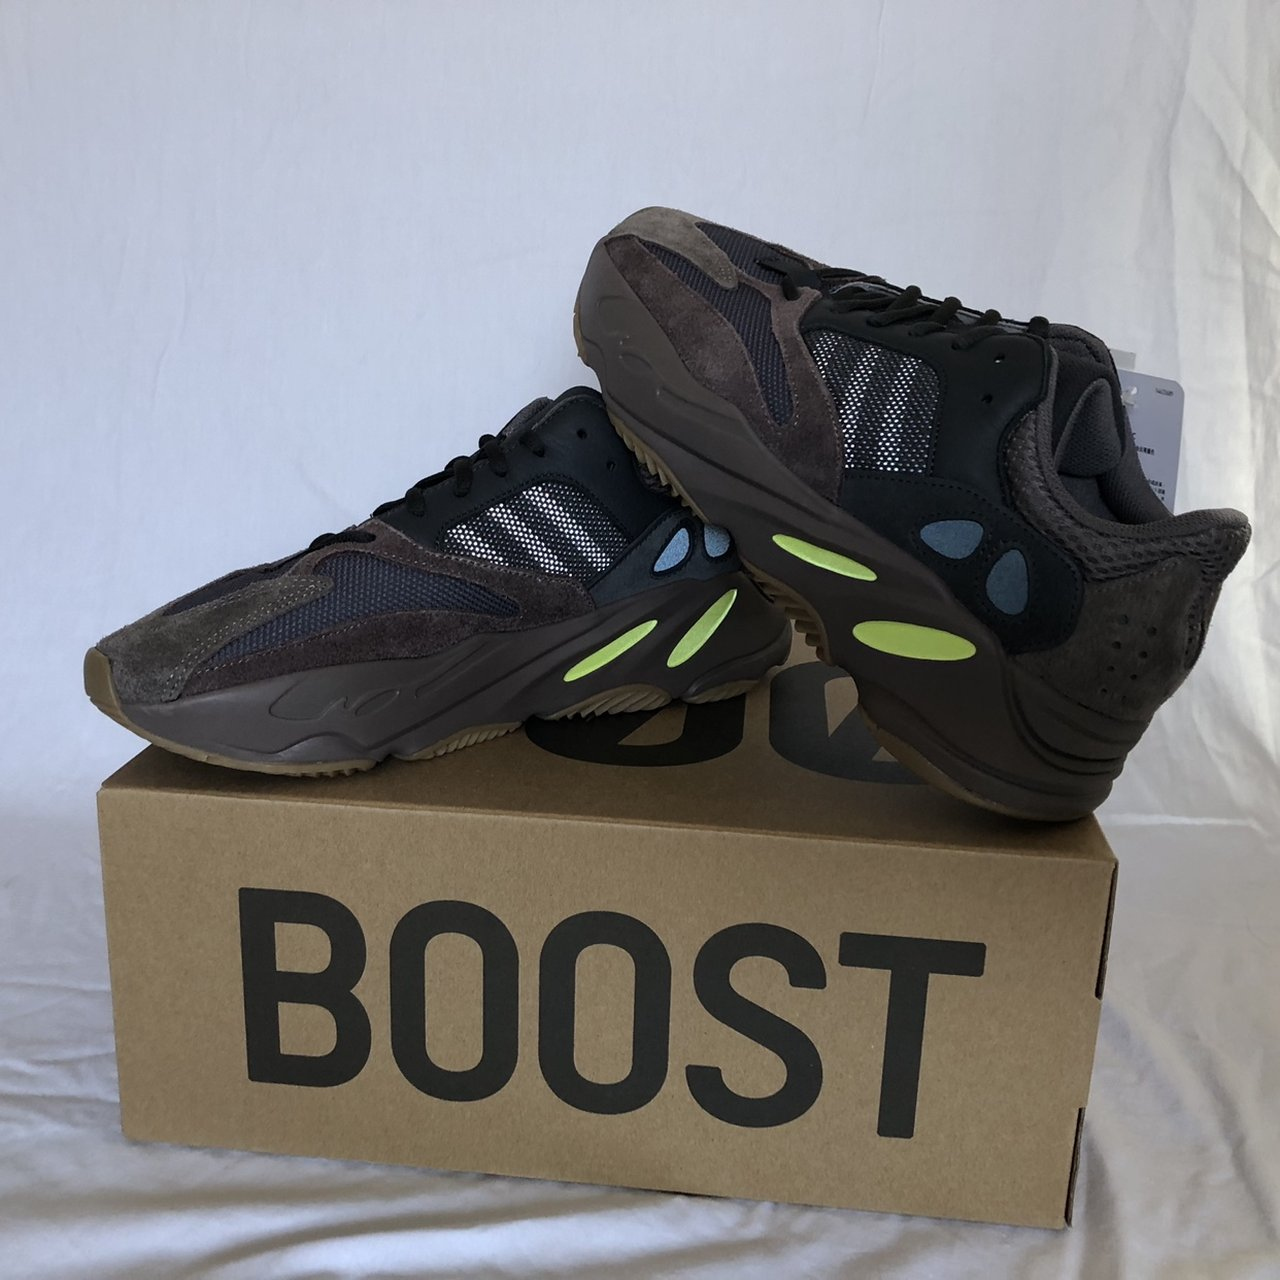 95a91f816588c Yeezy 700 boost Muave size 10 • deadstock new with tags • me - Depop